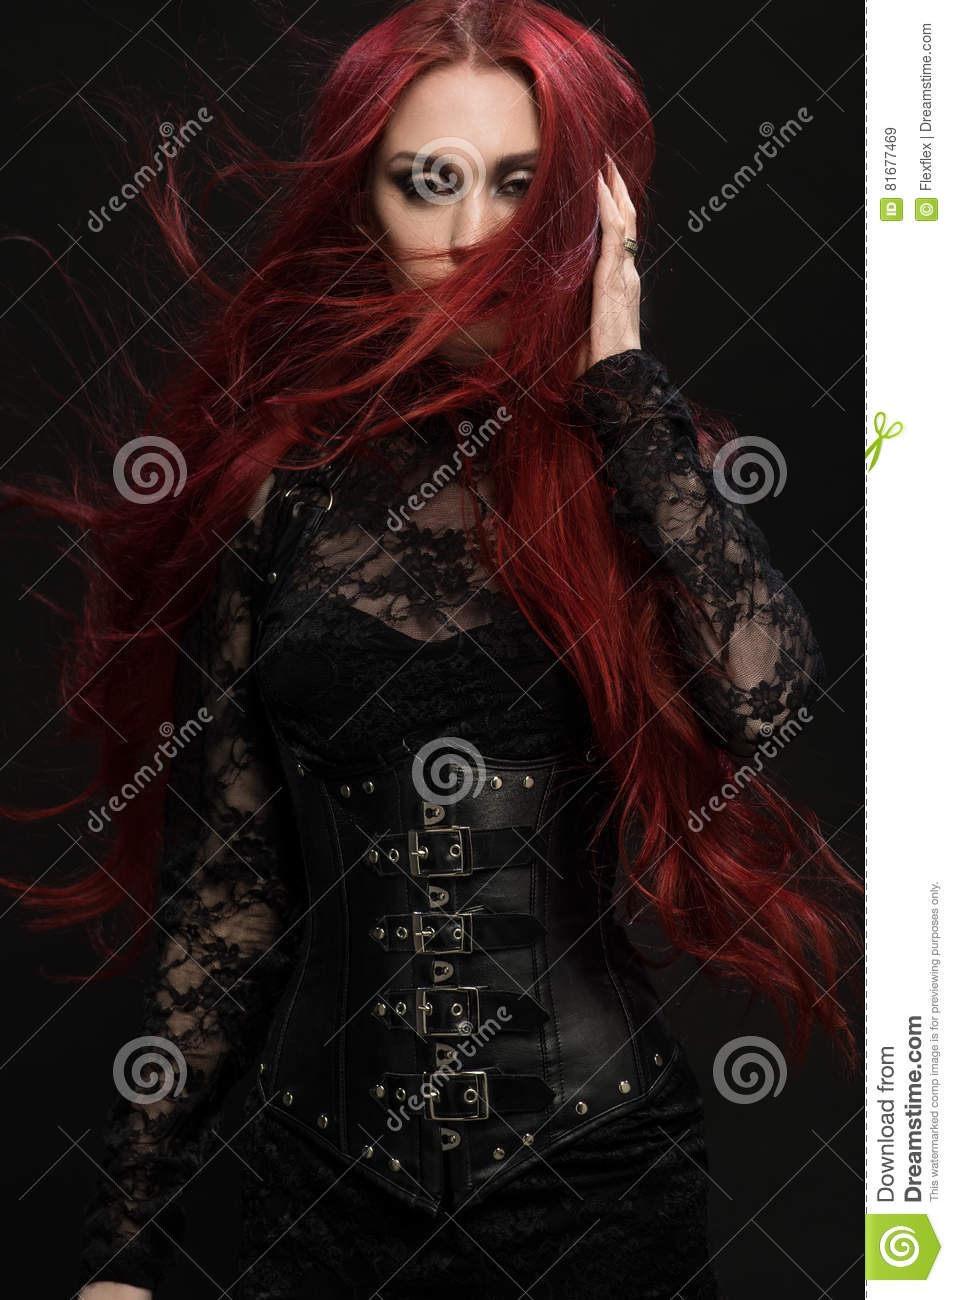 Young woman with red hair in black gothic costume